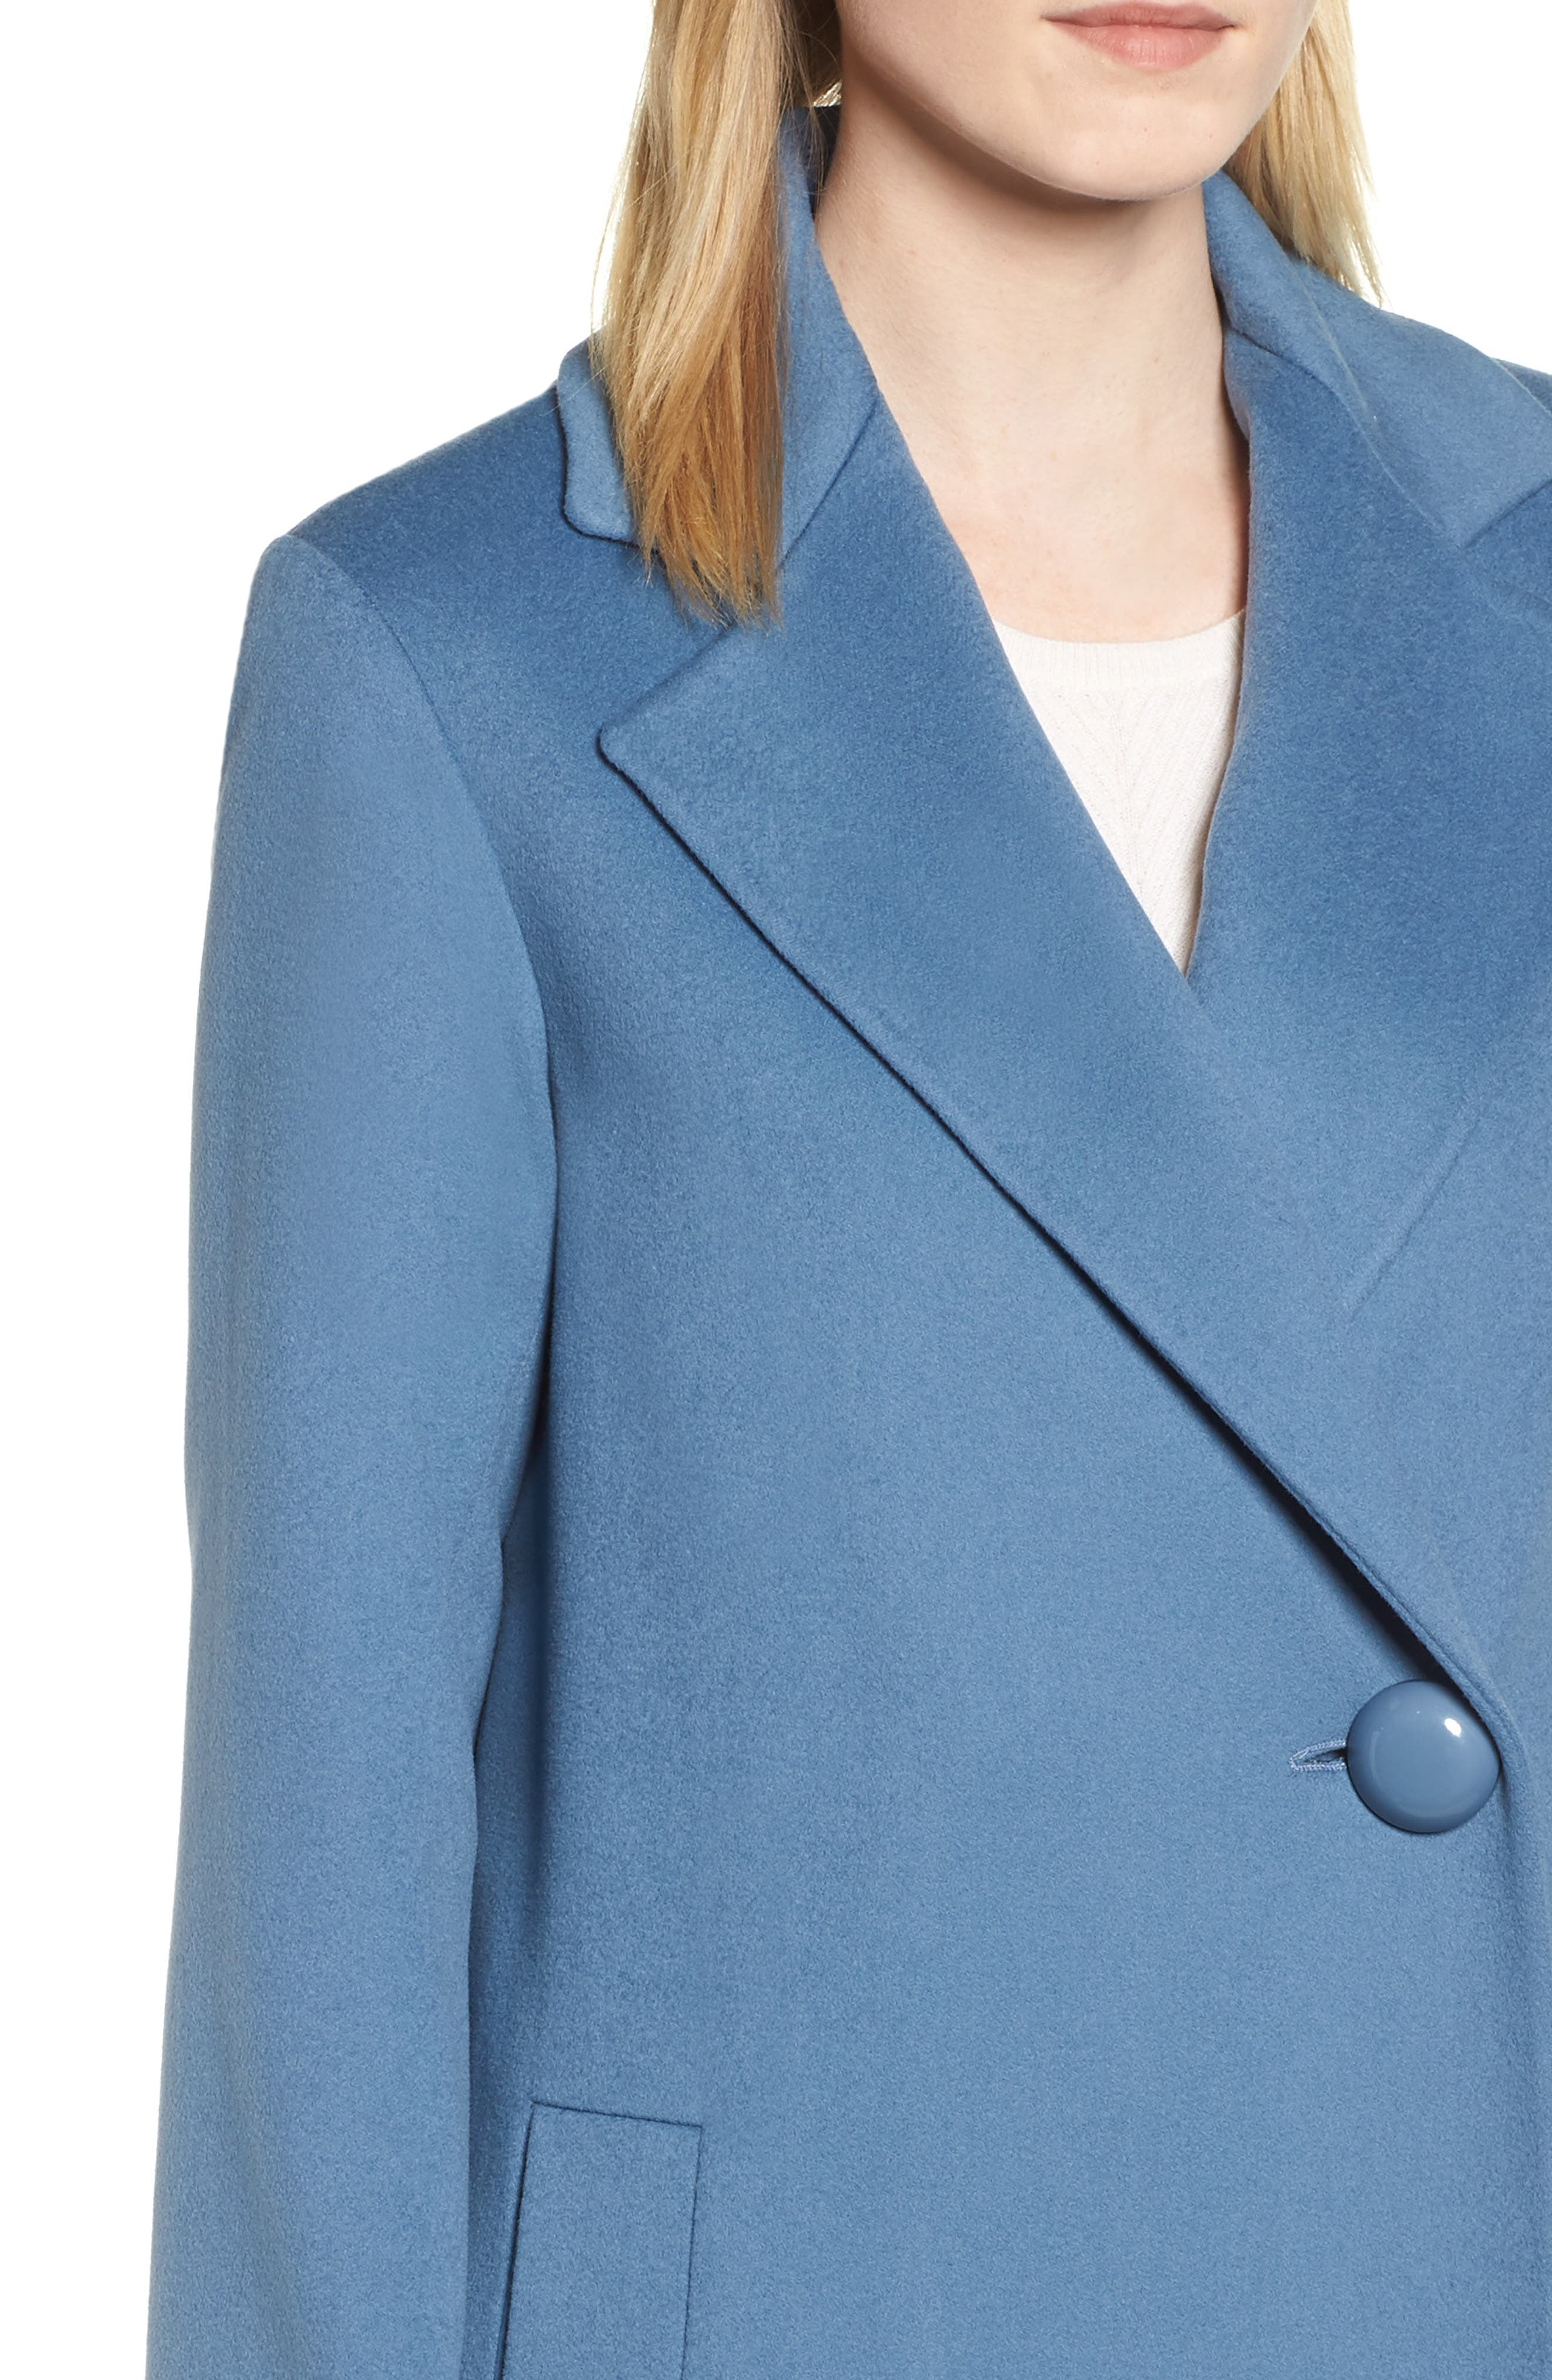 FLEURETTE, One-Button Loro Piana Wool Coat, Alternate thumbnail 5, color, CORNFLOWER